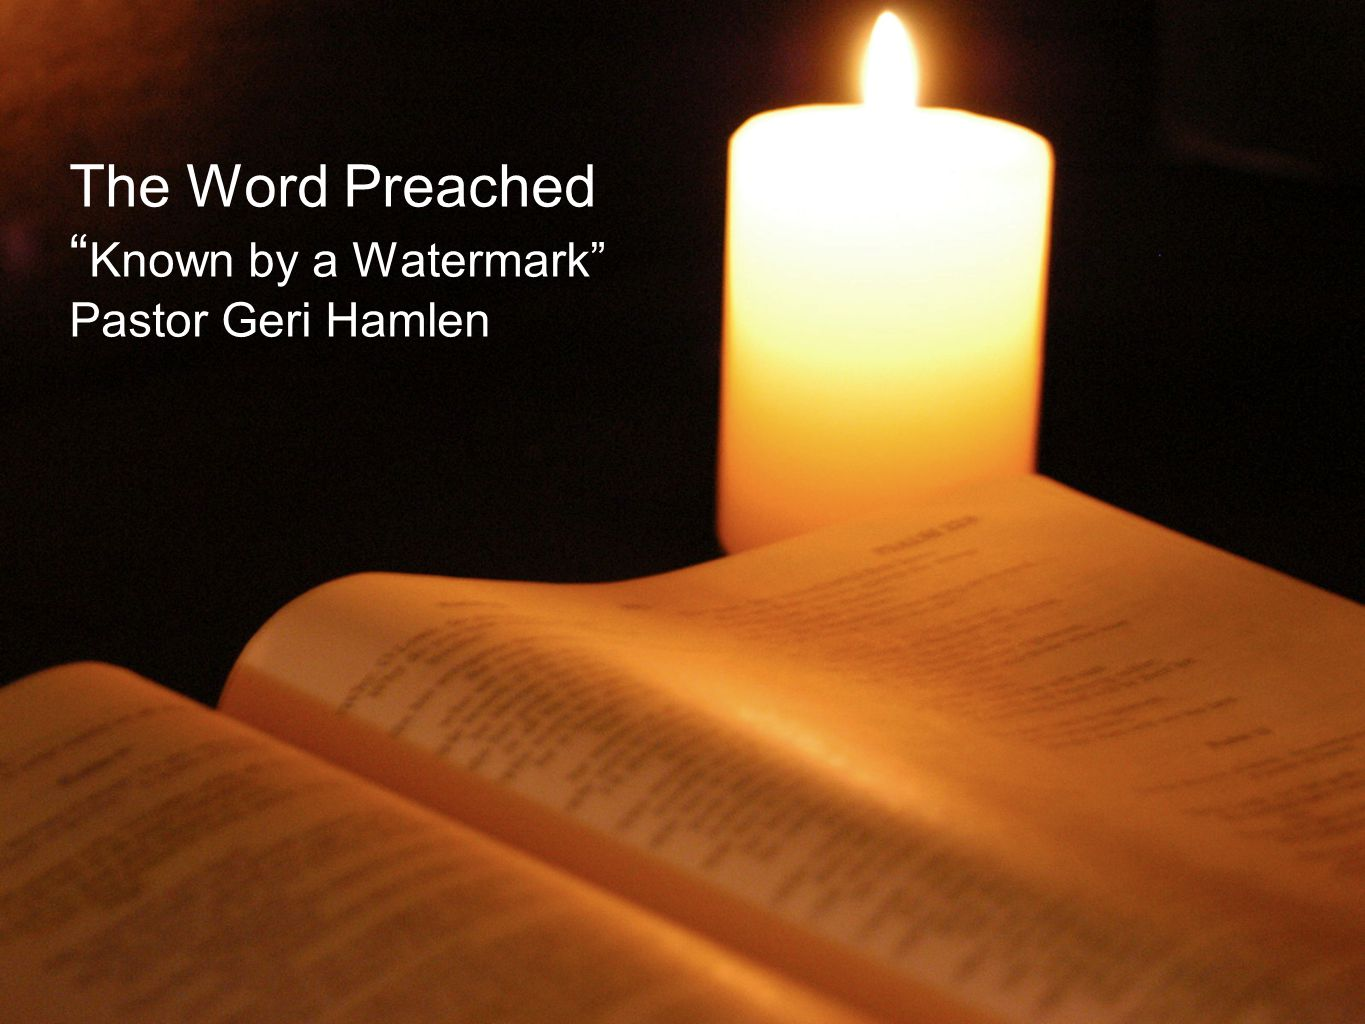 The Word Preached Known by a Watermark Pastor Geri Hamlen